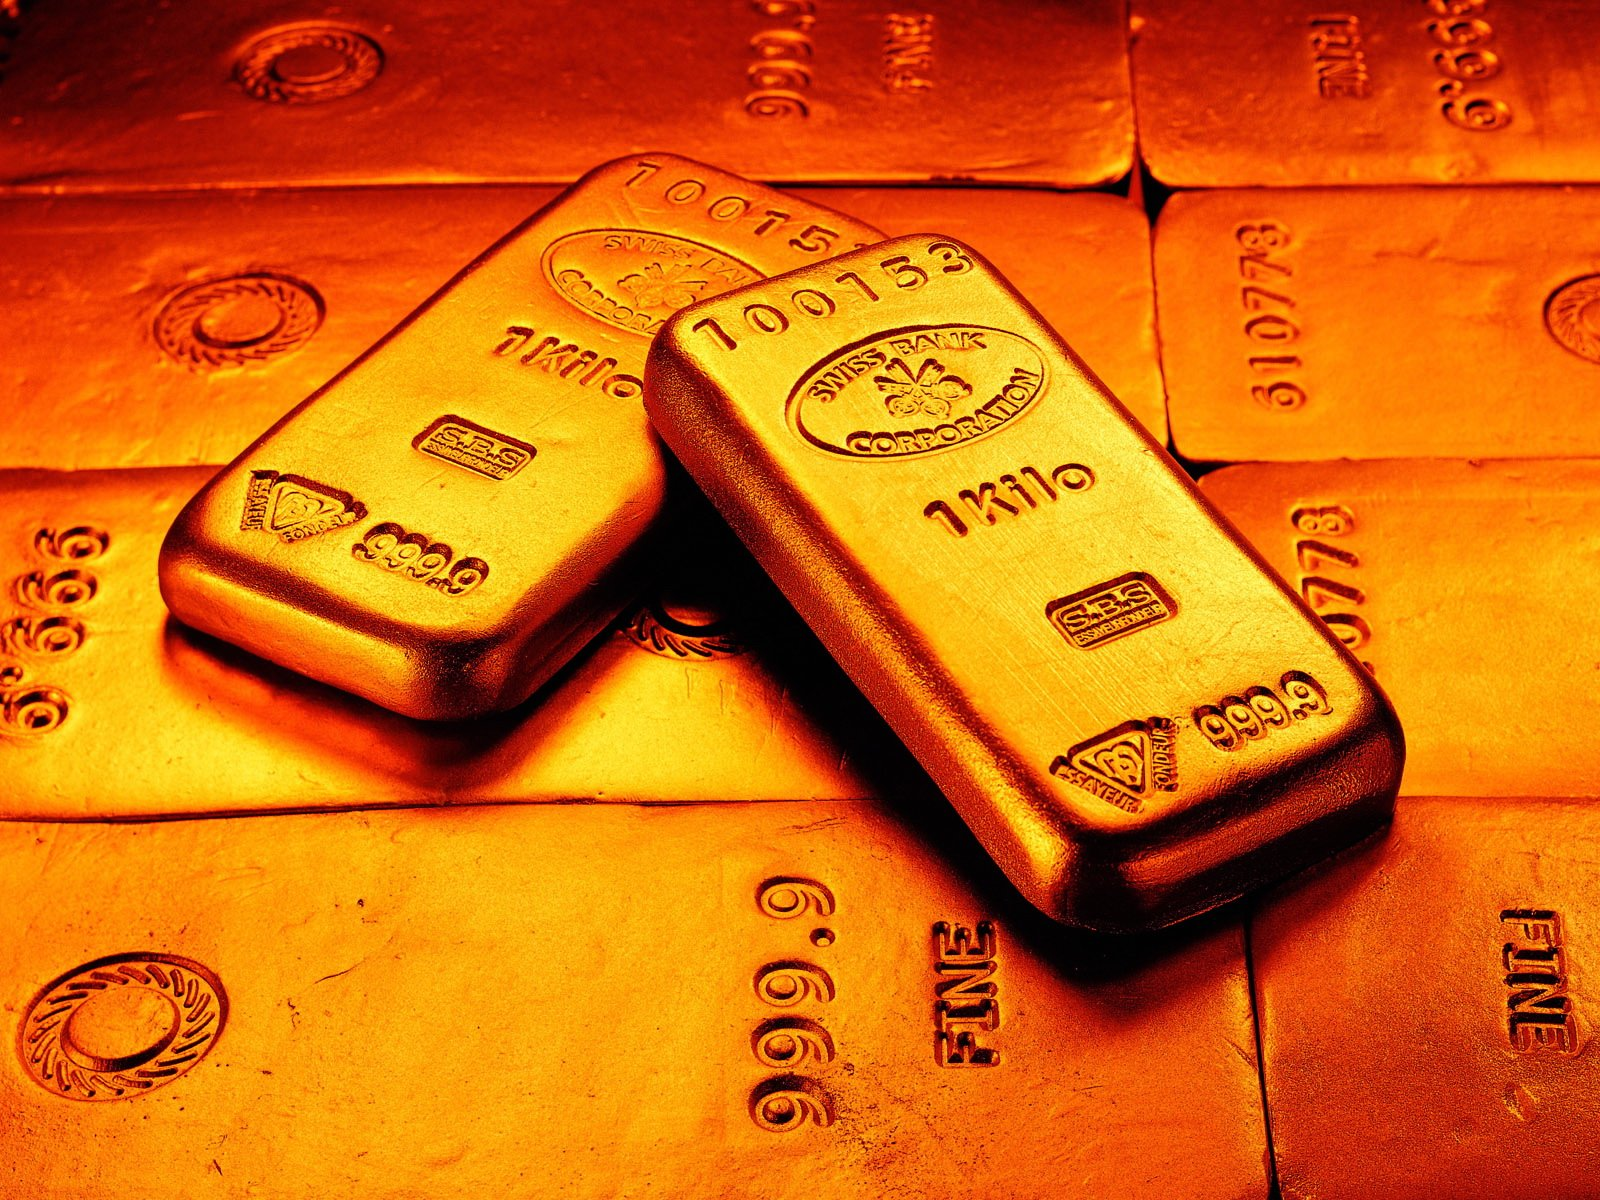 Gold higher sample wallpapers and images   wallpapers pictures 1600x1200